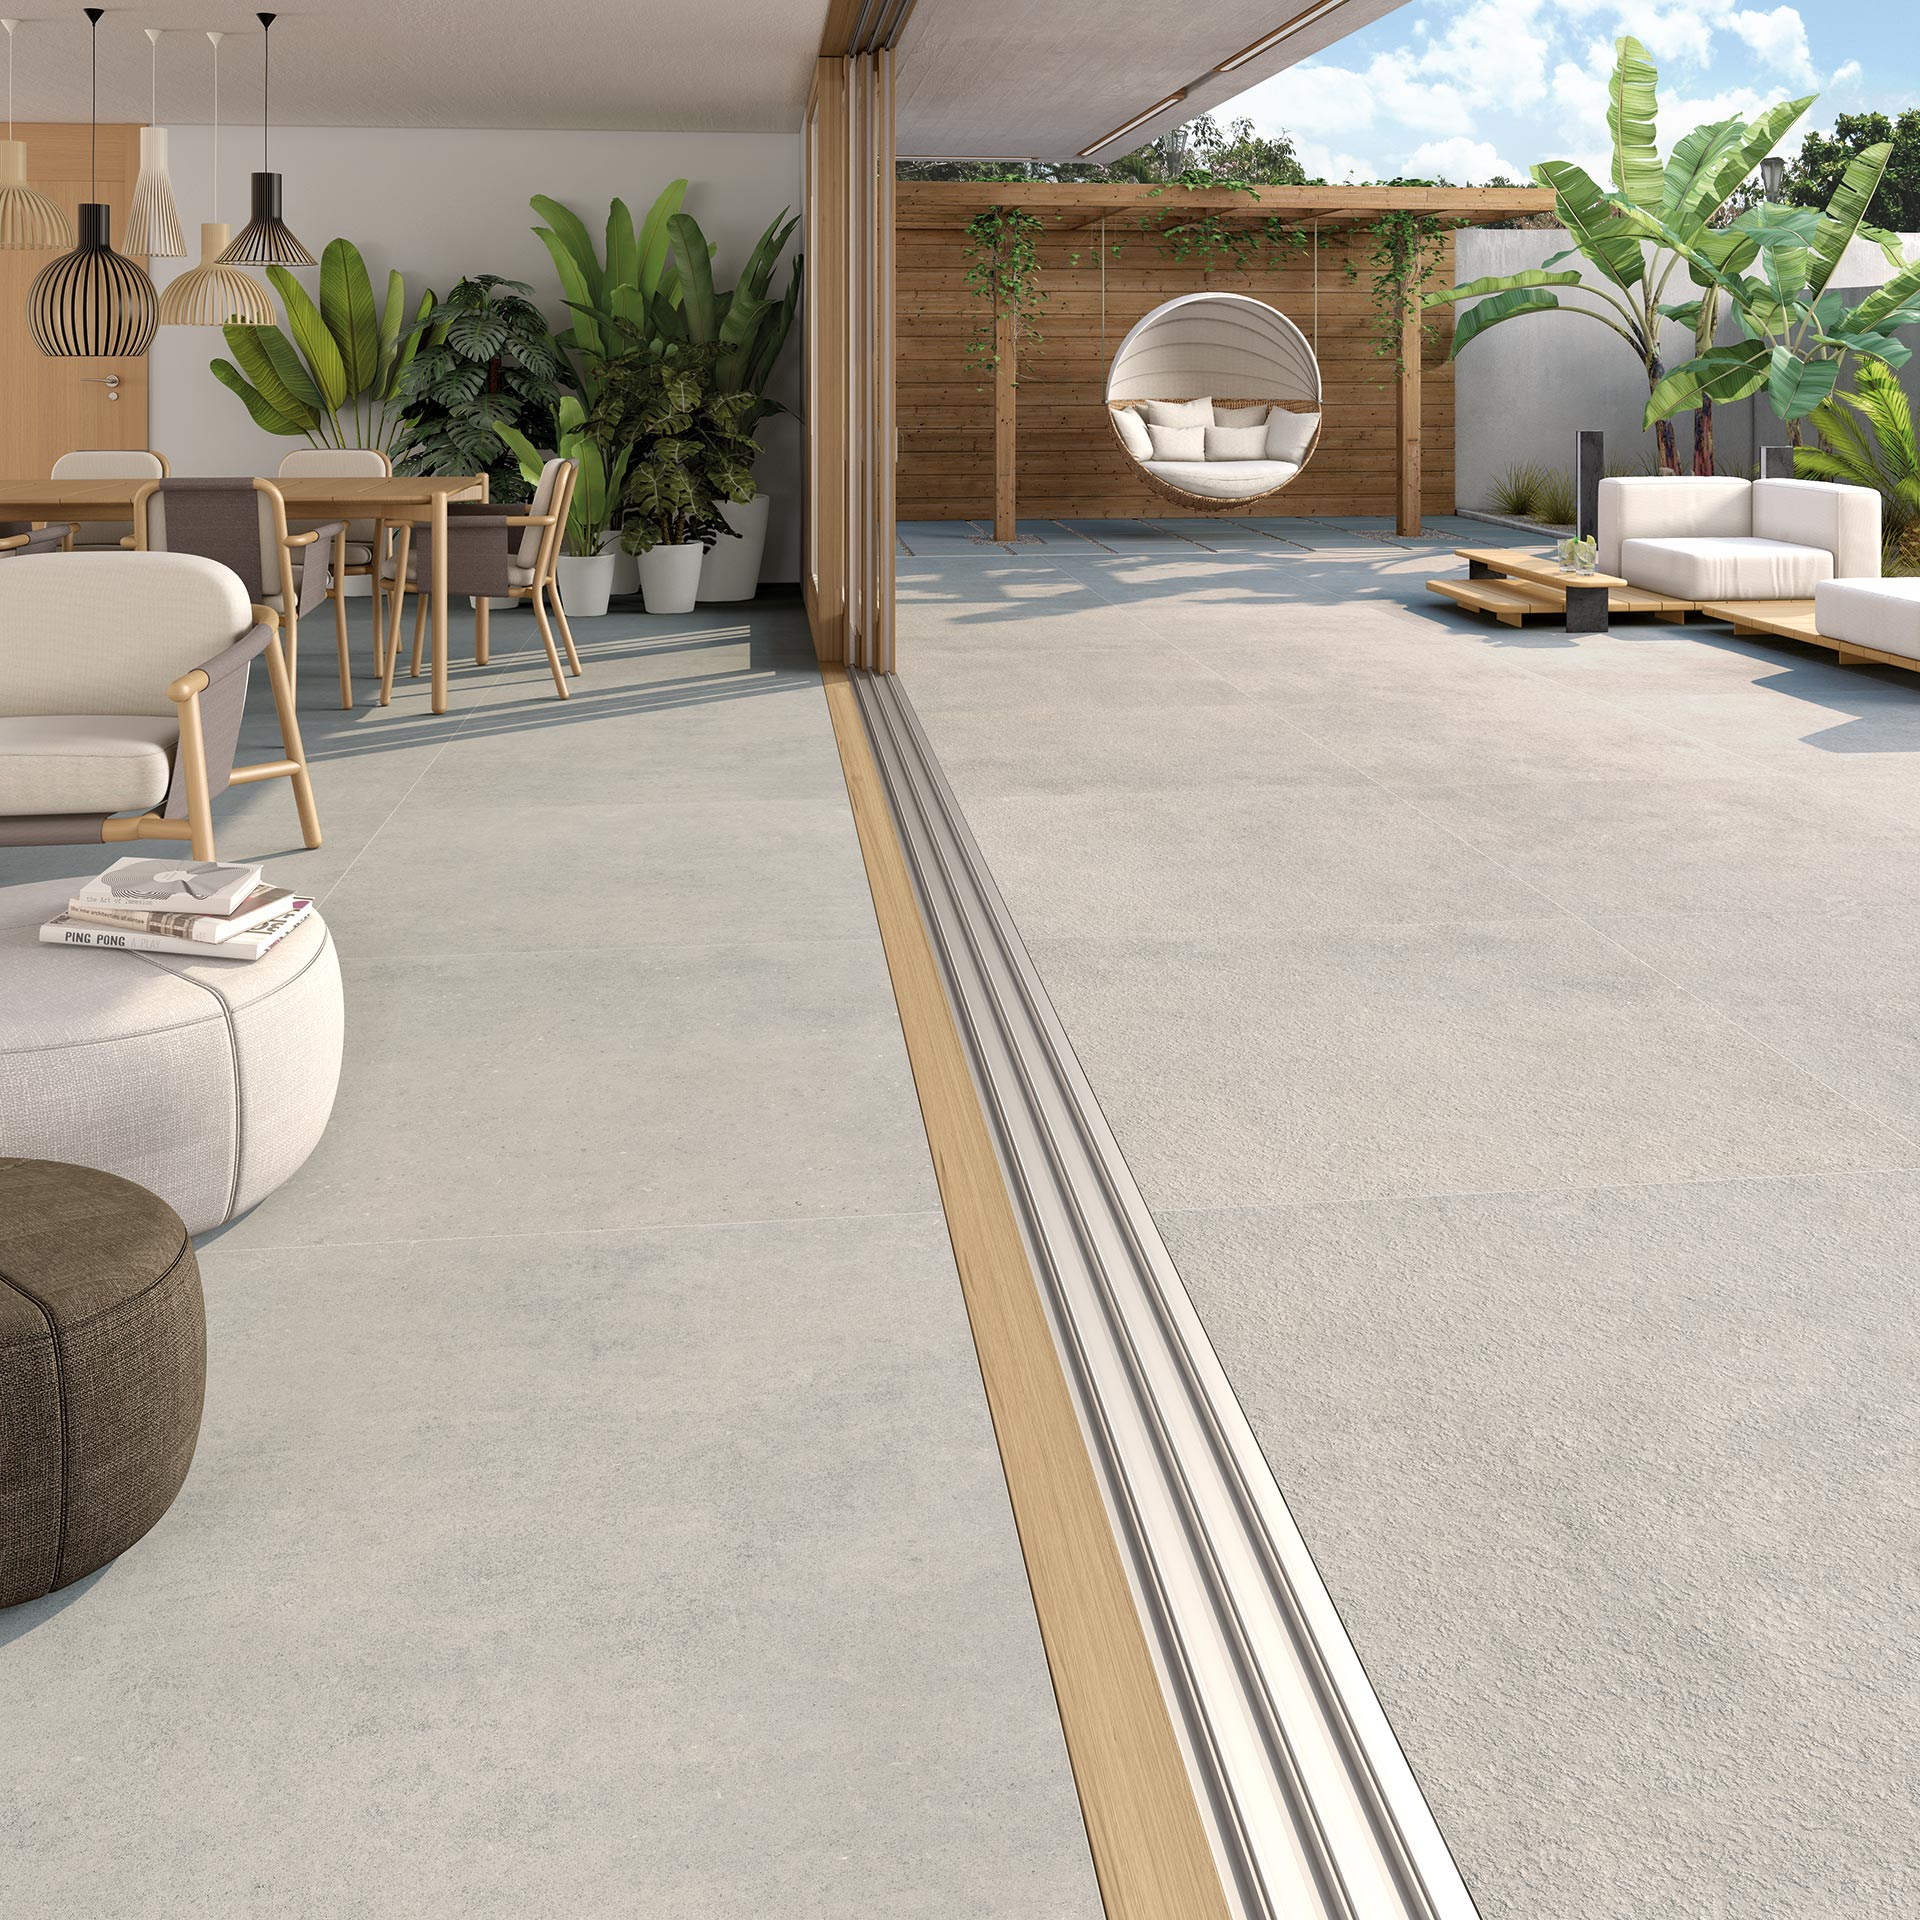 Concrete for Porches | Nassau